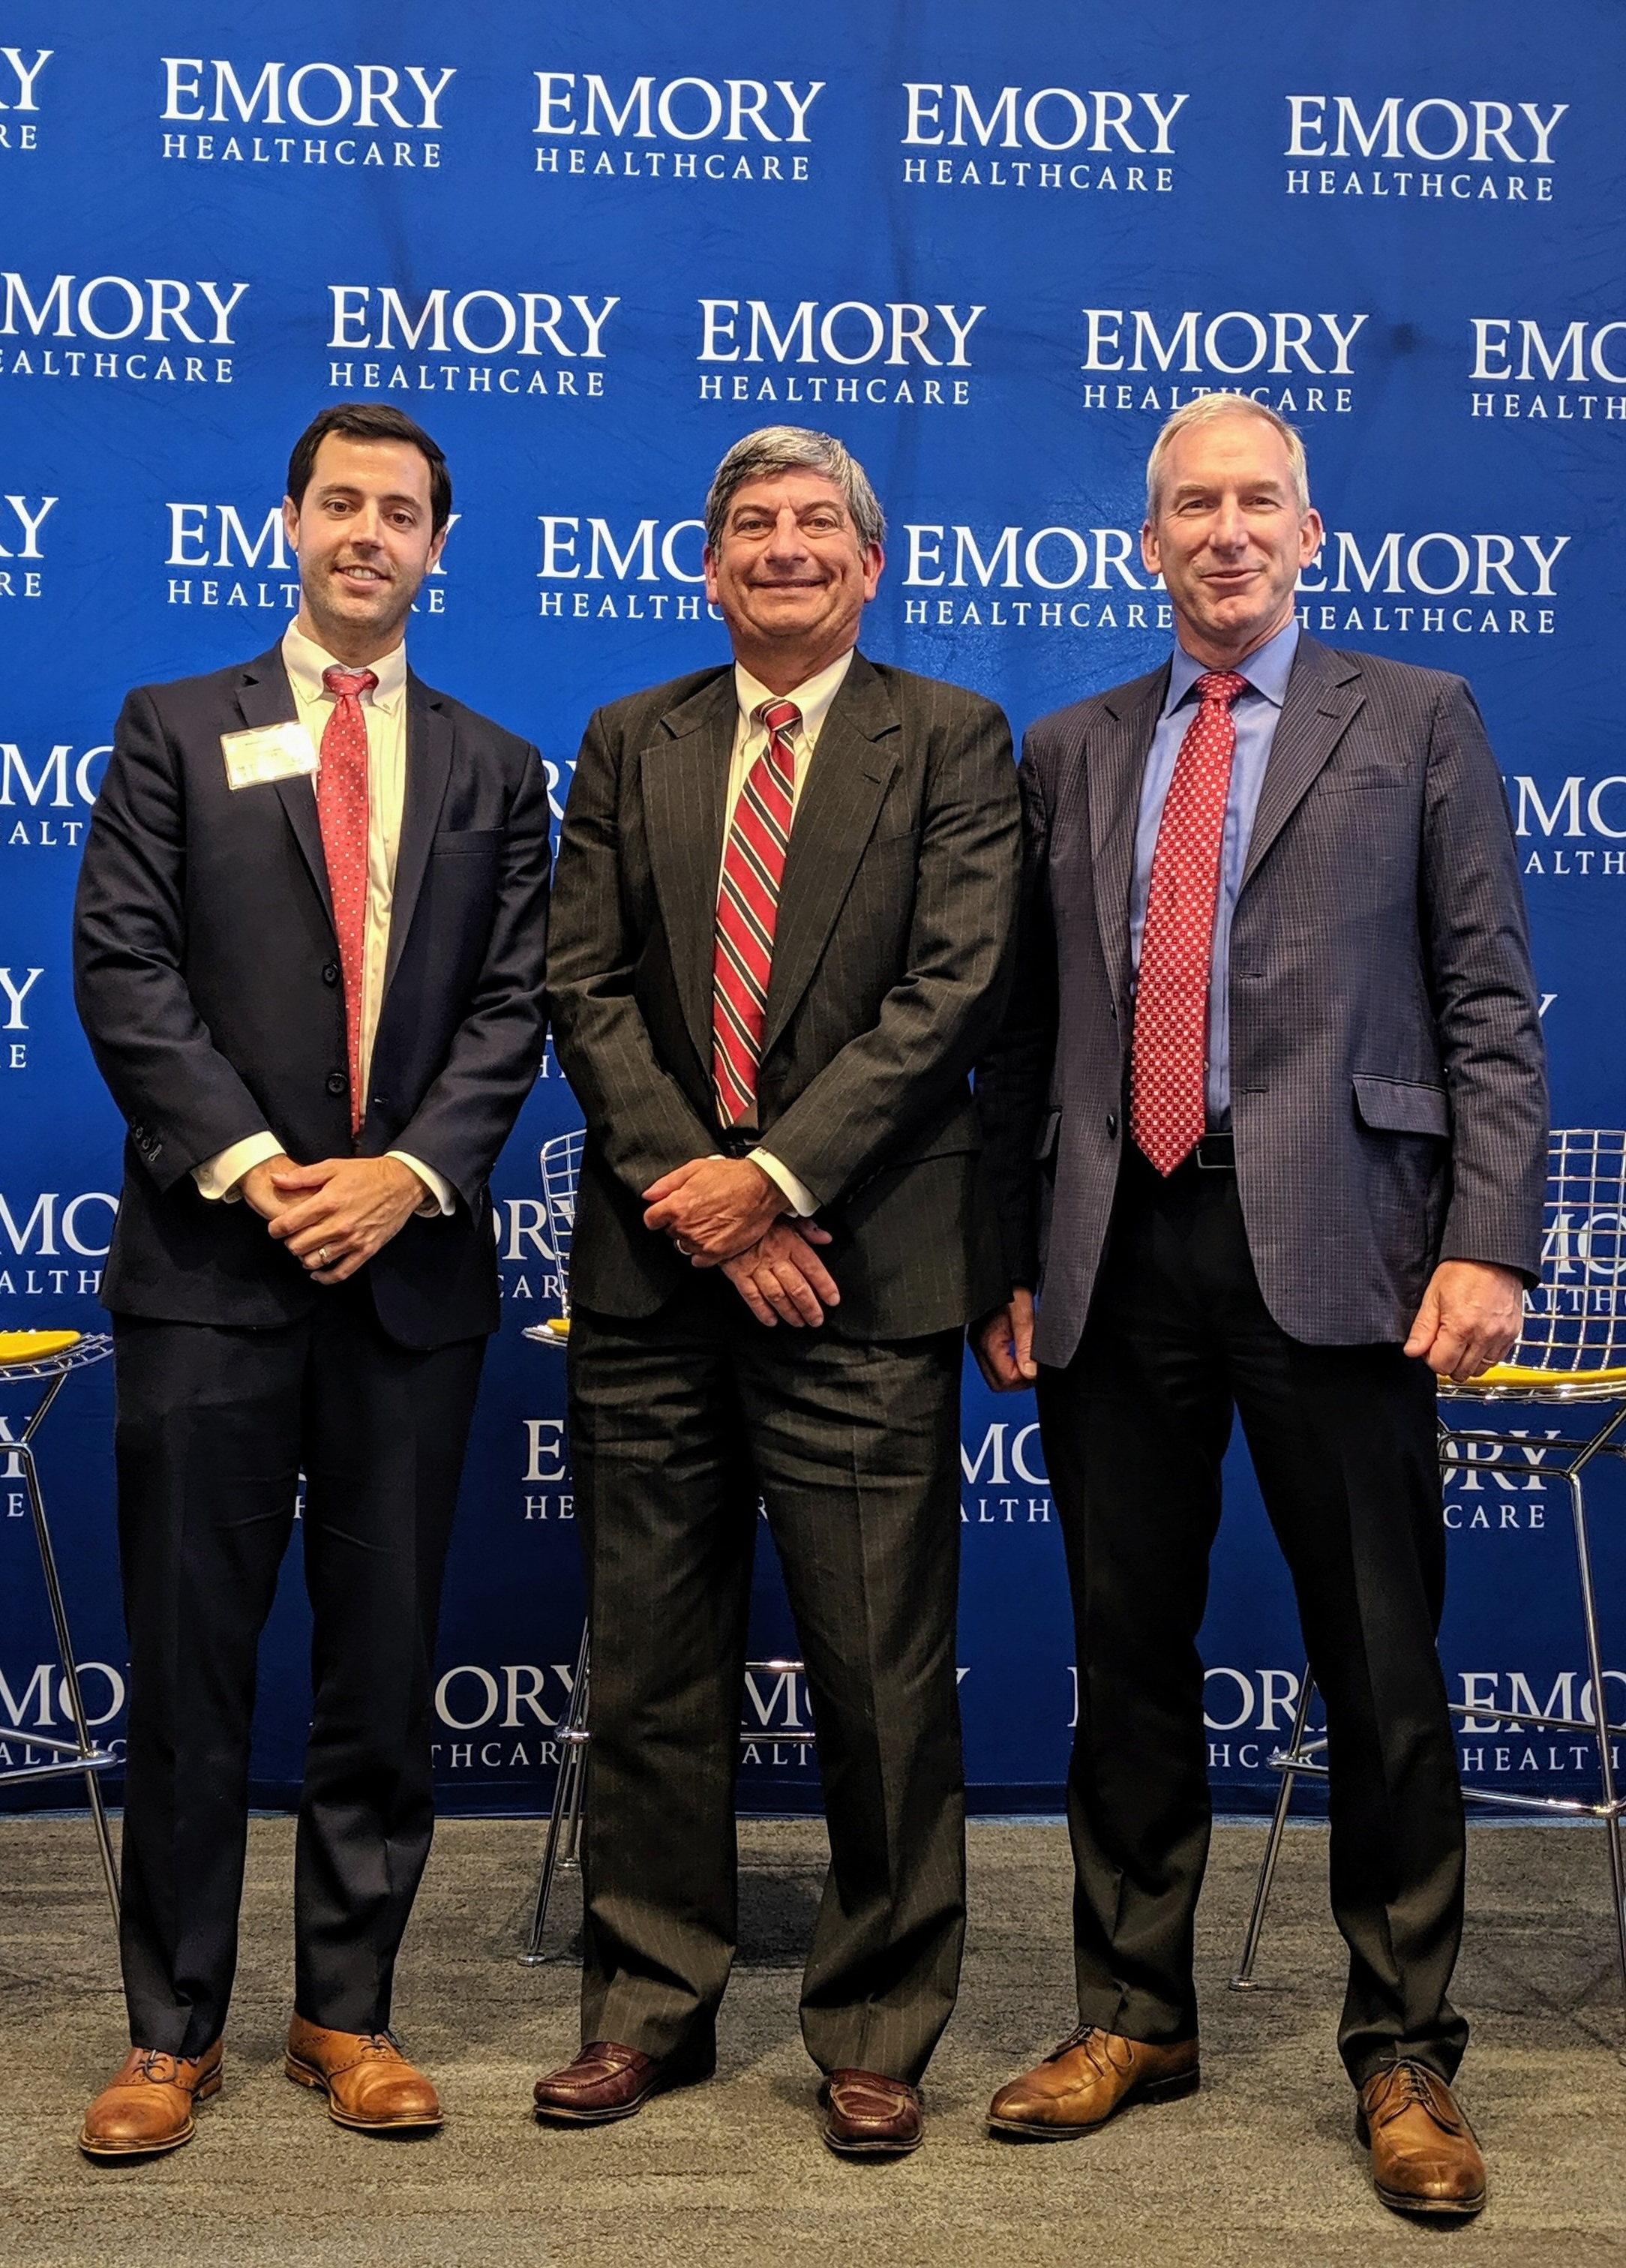 Pictured above from left to right: James Lewis, Co-Founder and CEO of 11|TEN Innovation Partners; Scott D. Boden, M.D., Vice President of Business Innovation, Emory Healthcare; David Widmann, President and CEO, Konica Minolta Healthcare Americas.